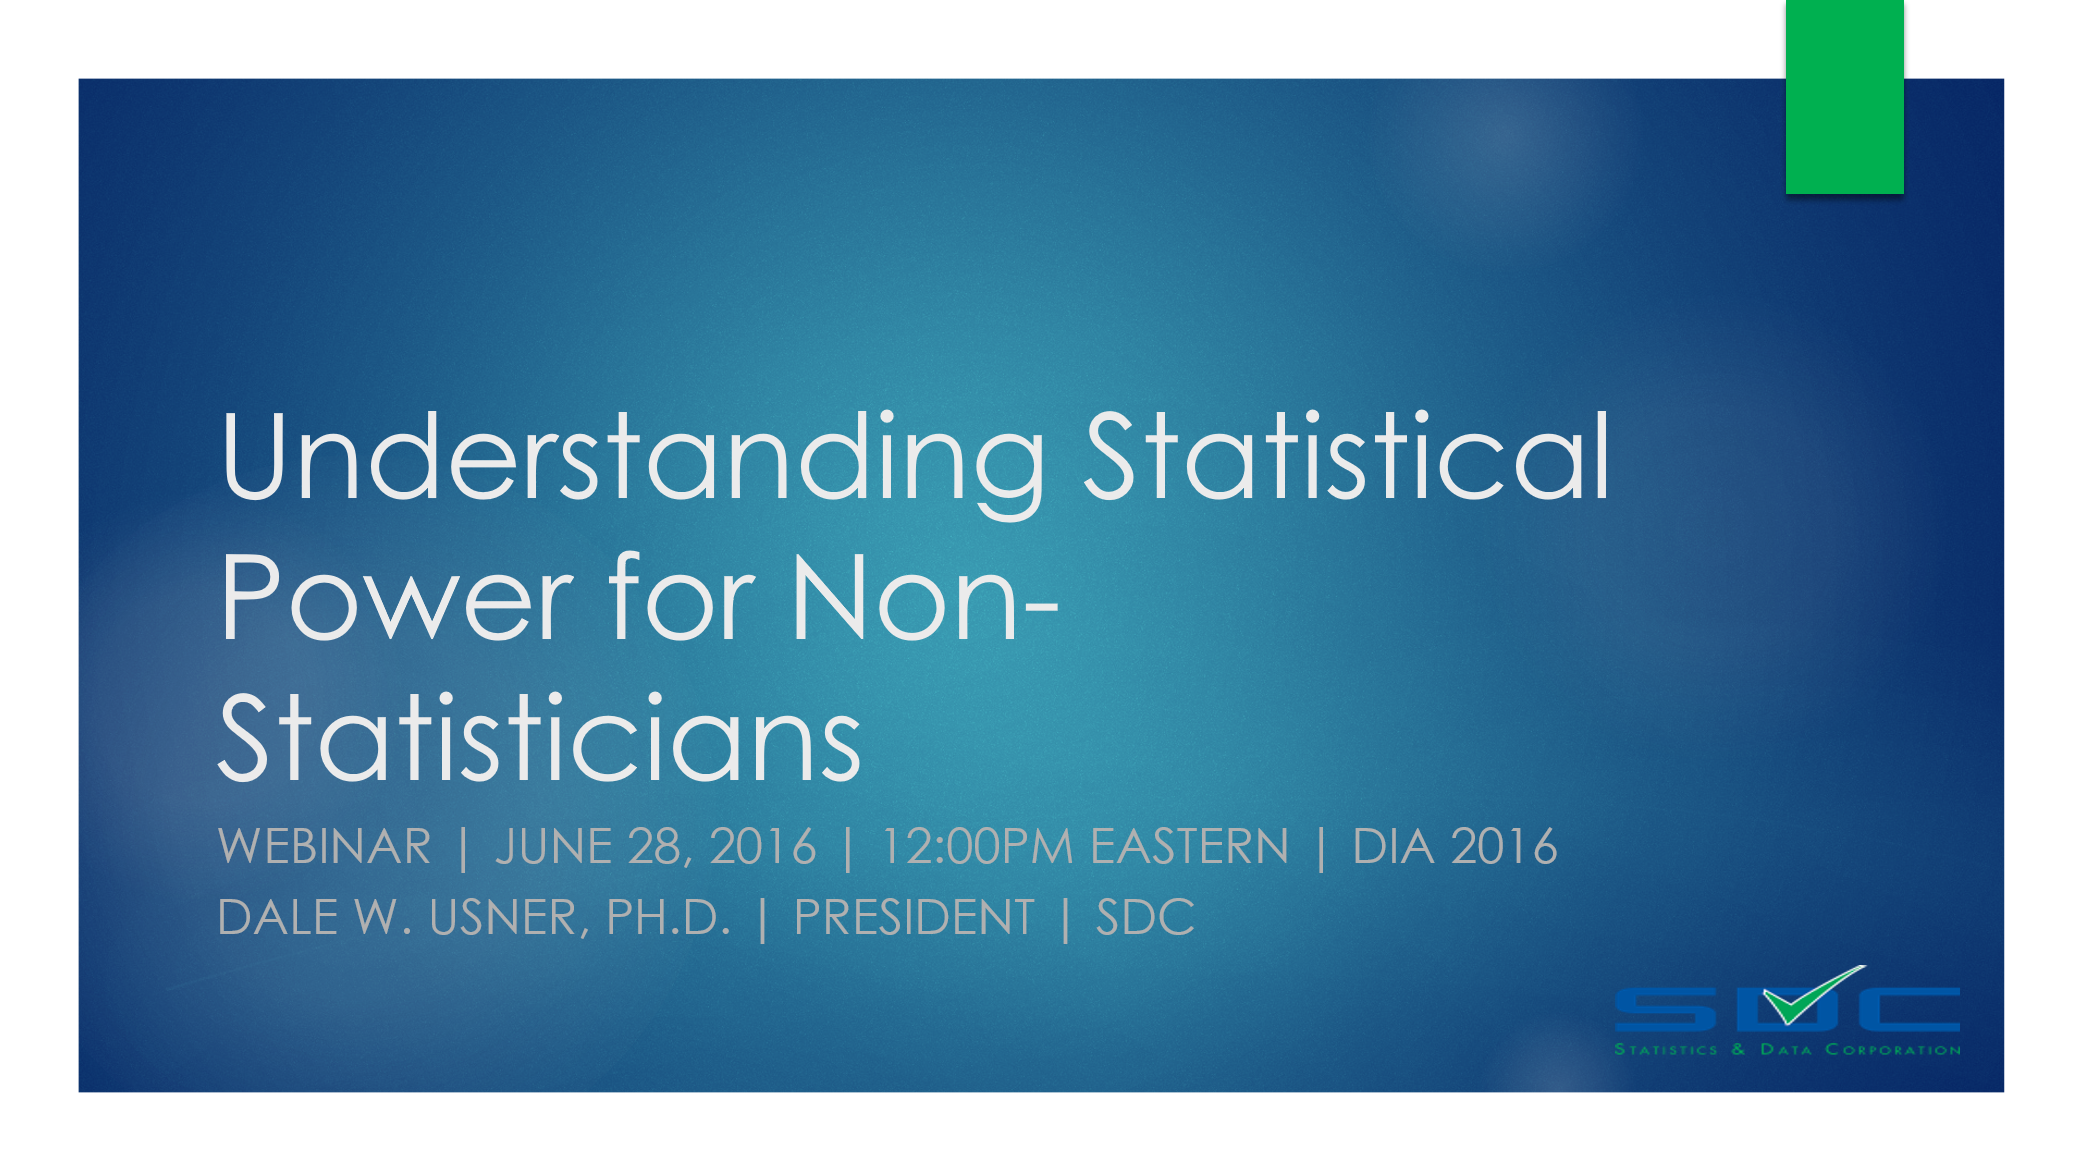 Screenshot_-_Webinar_-_Understanding_Statistical_Power_for_Non-Statisticians.png